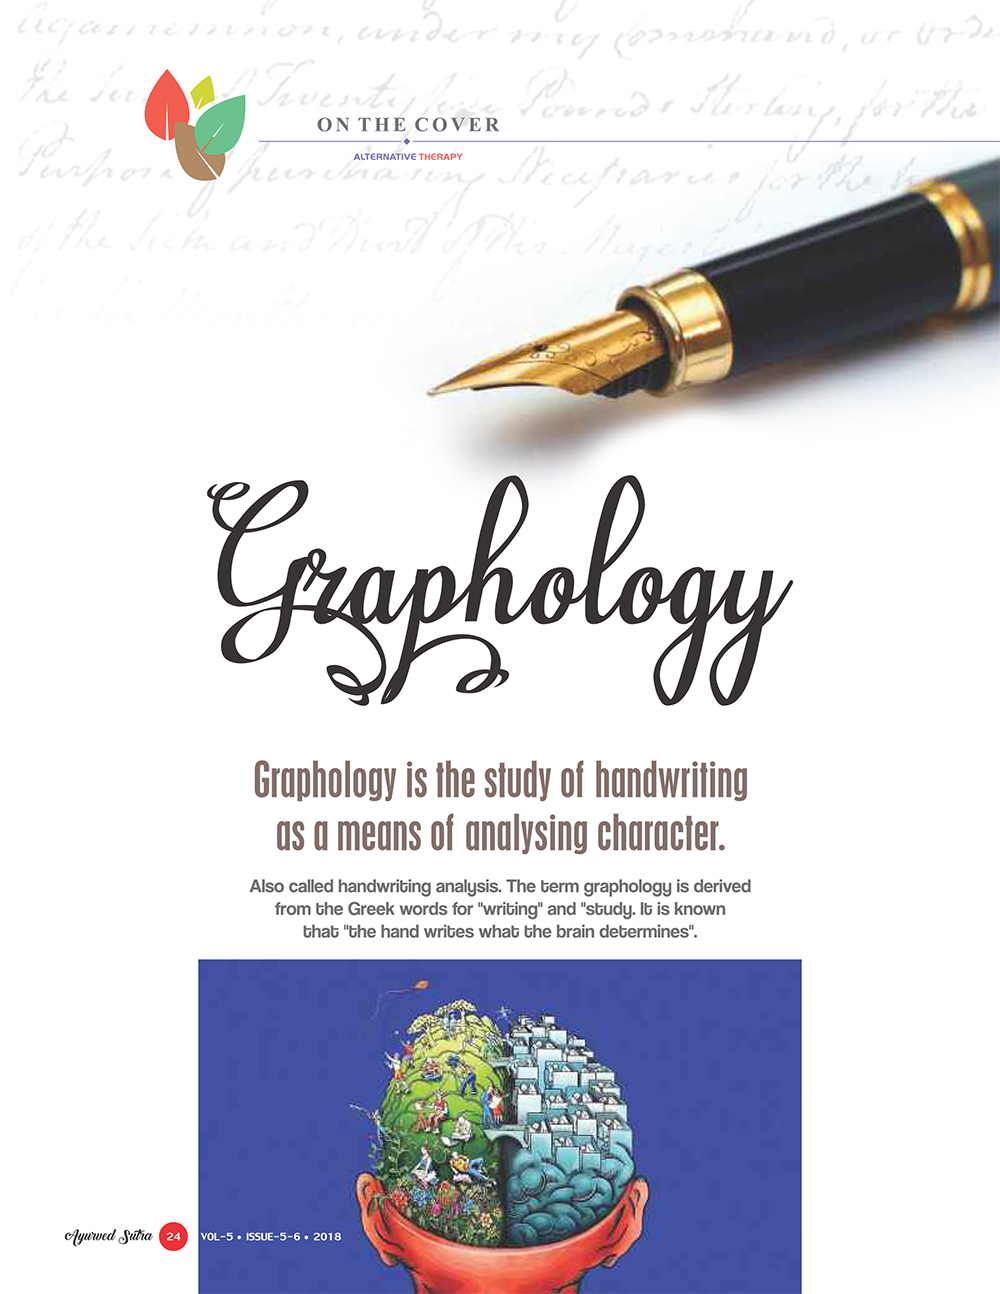 Ayurvedsutra Vol 05 issue 05 06 26 - Graphology